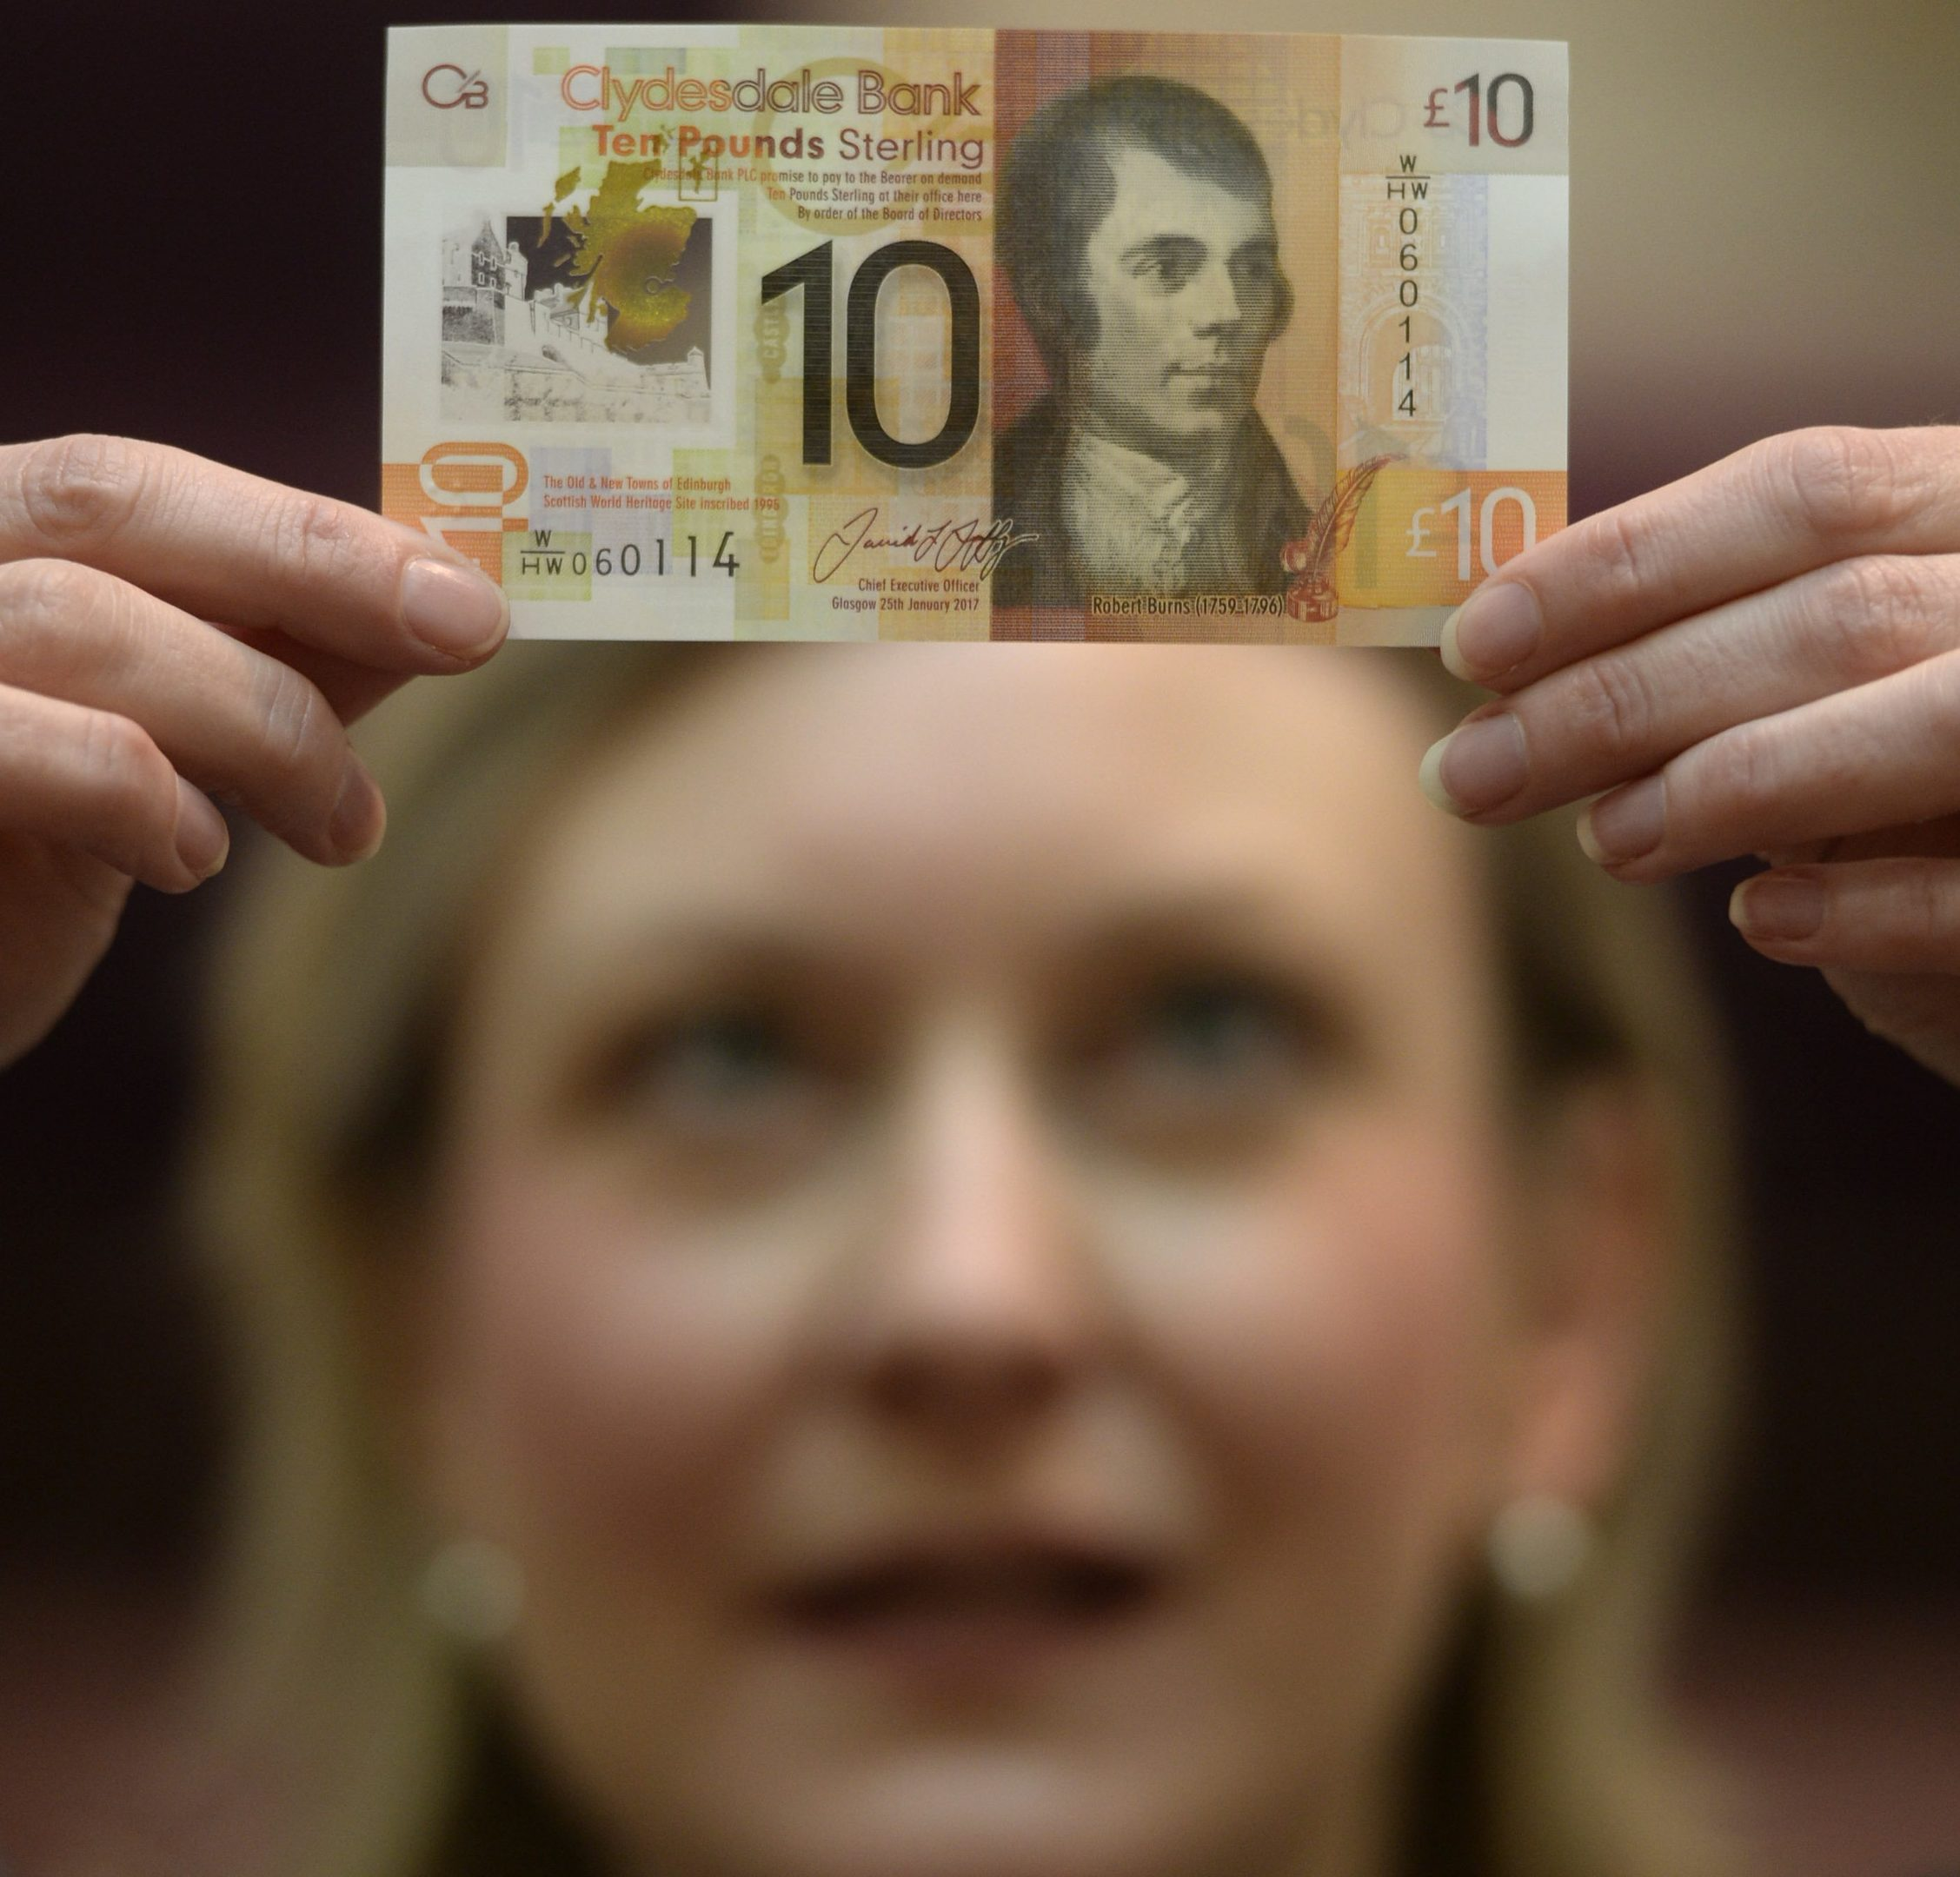 Clydesdale Bank company secretary Lorna McMillan admires the new £10 polymer bank note which is waterproof and twice as durable as paper bank notes at the company HQ in Glasgow, Scotland (SWNS)